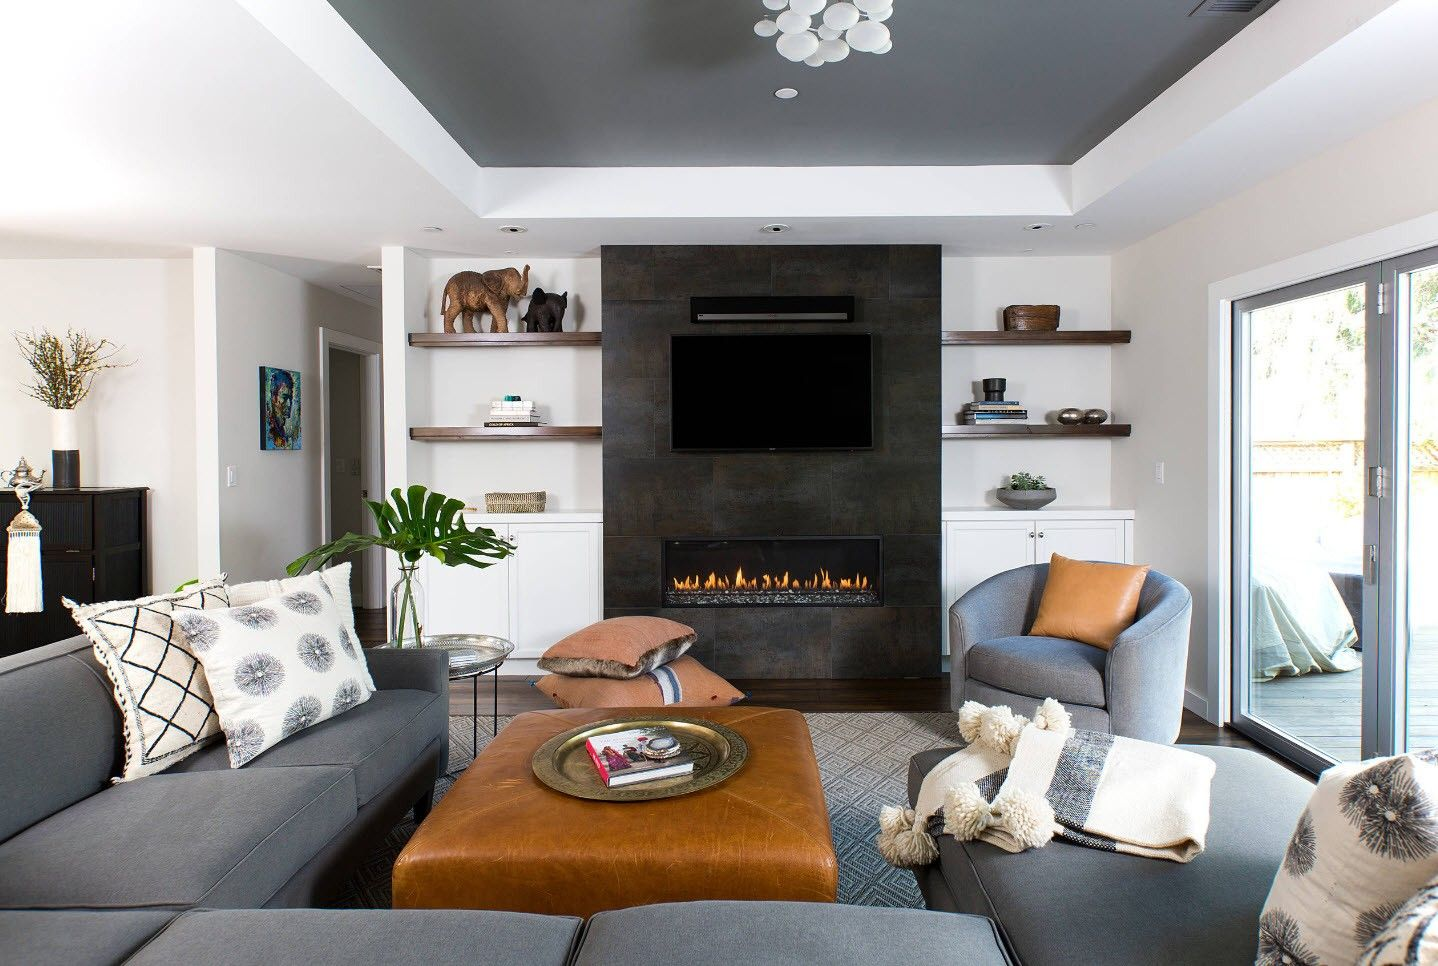 150 Square Feet Living Room Best Arrangement Ideas. Great accent wall decoration in black